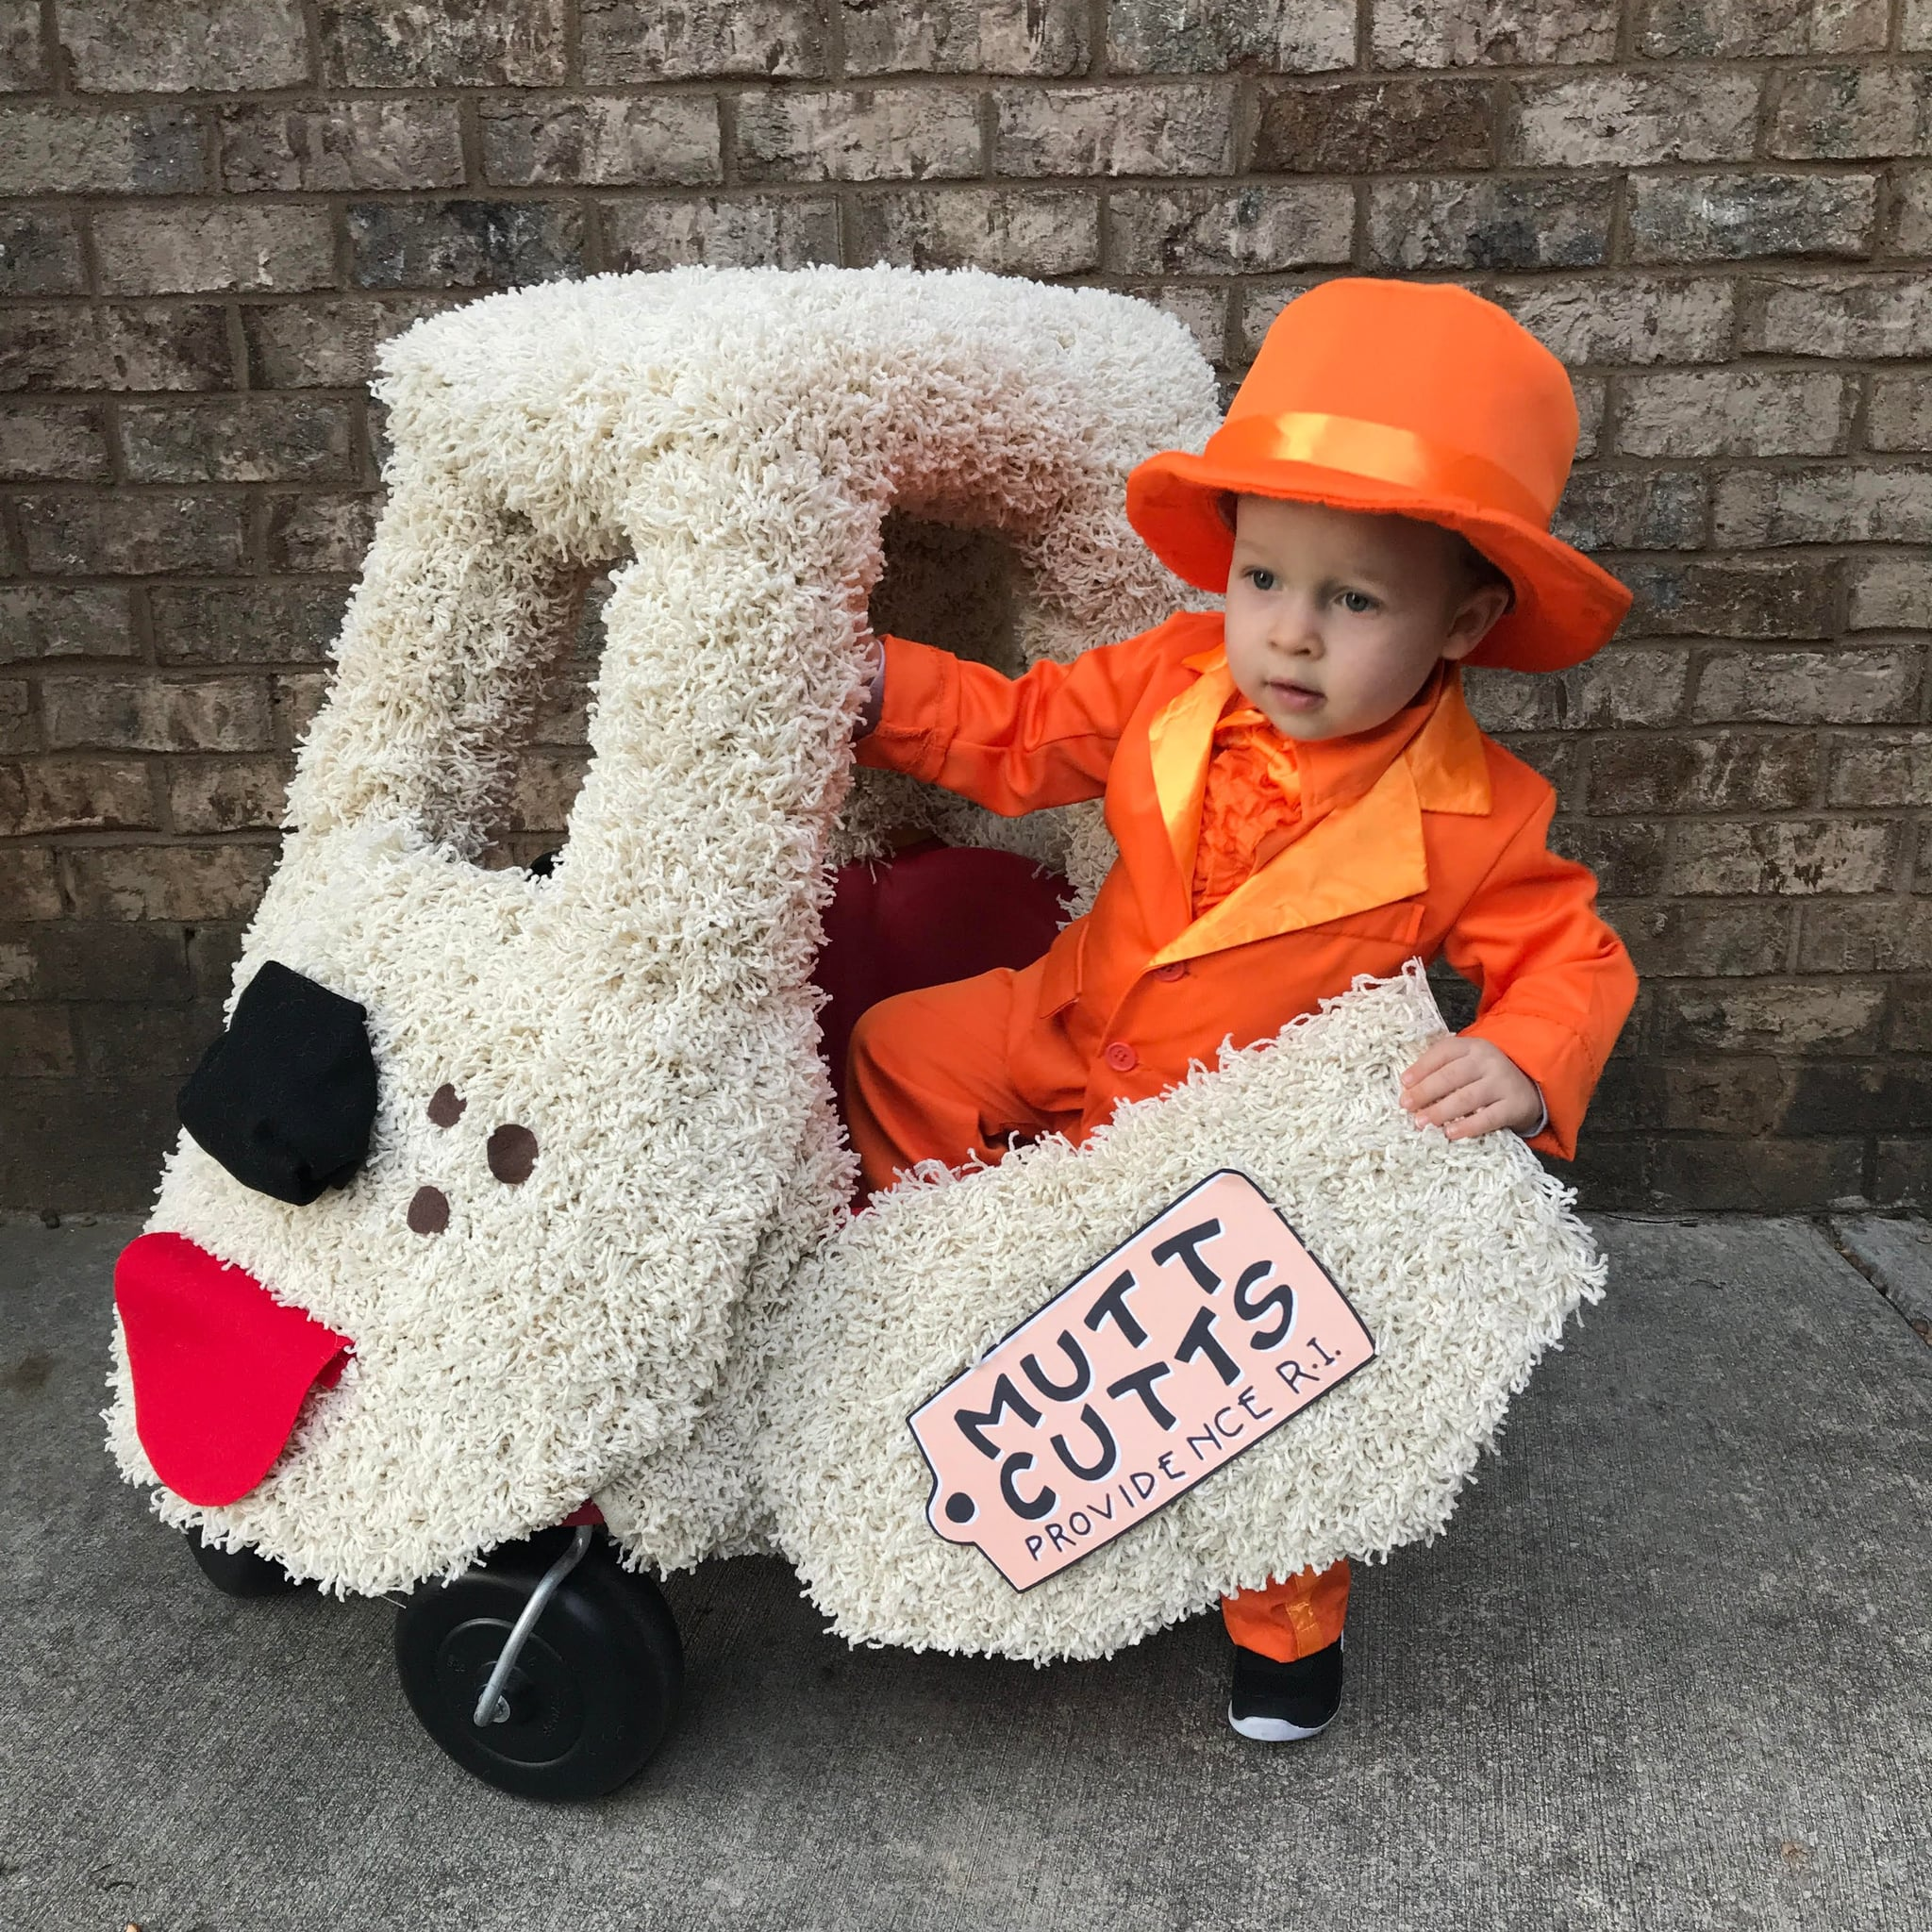 Unique Halloween Costume Ideas For Toddler Girl.Toddler Halloween Costume Ideas 2018 Popsugar Family